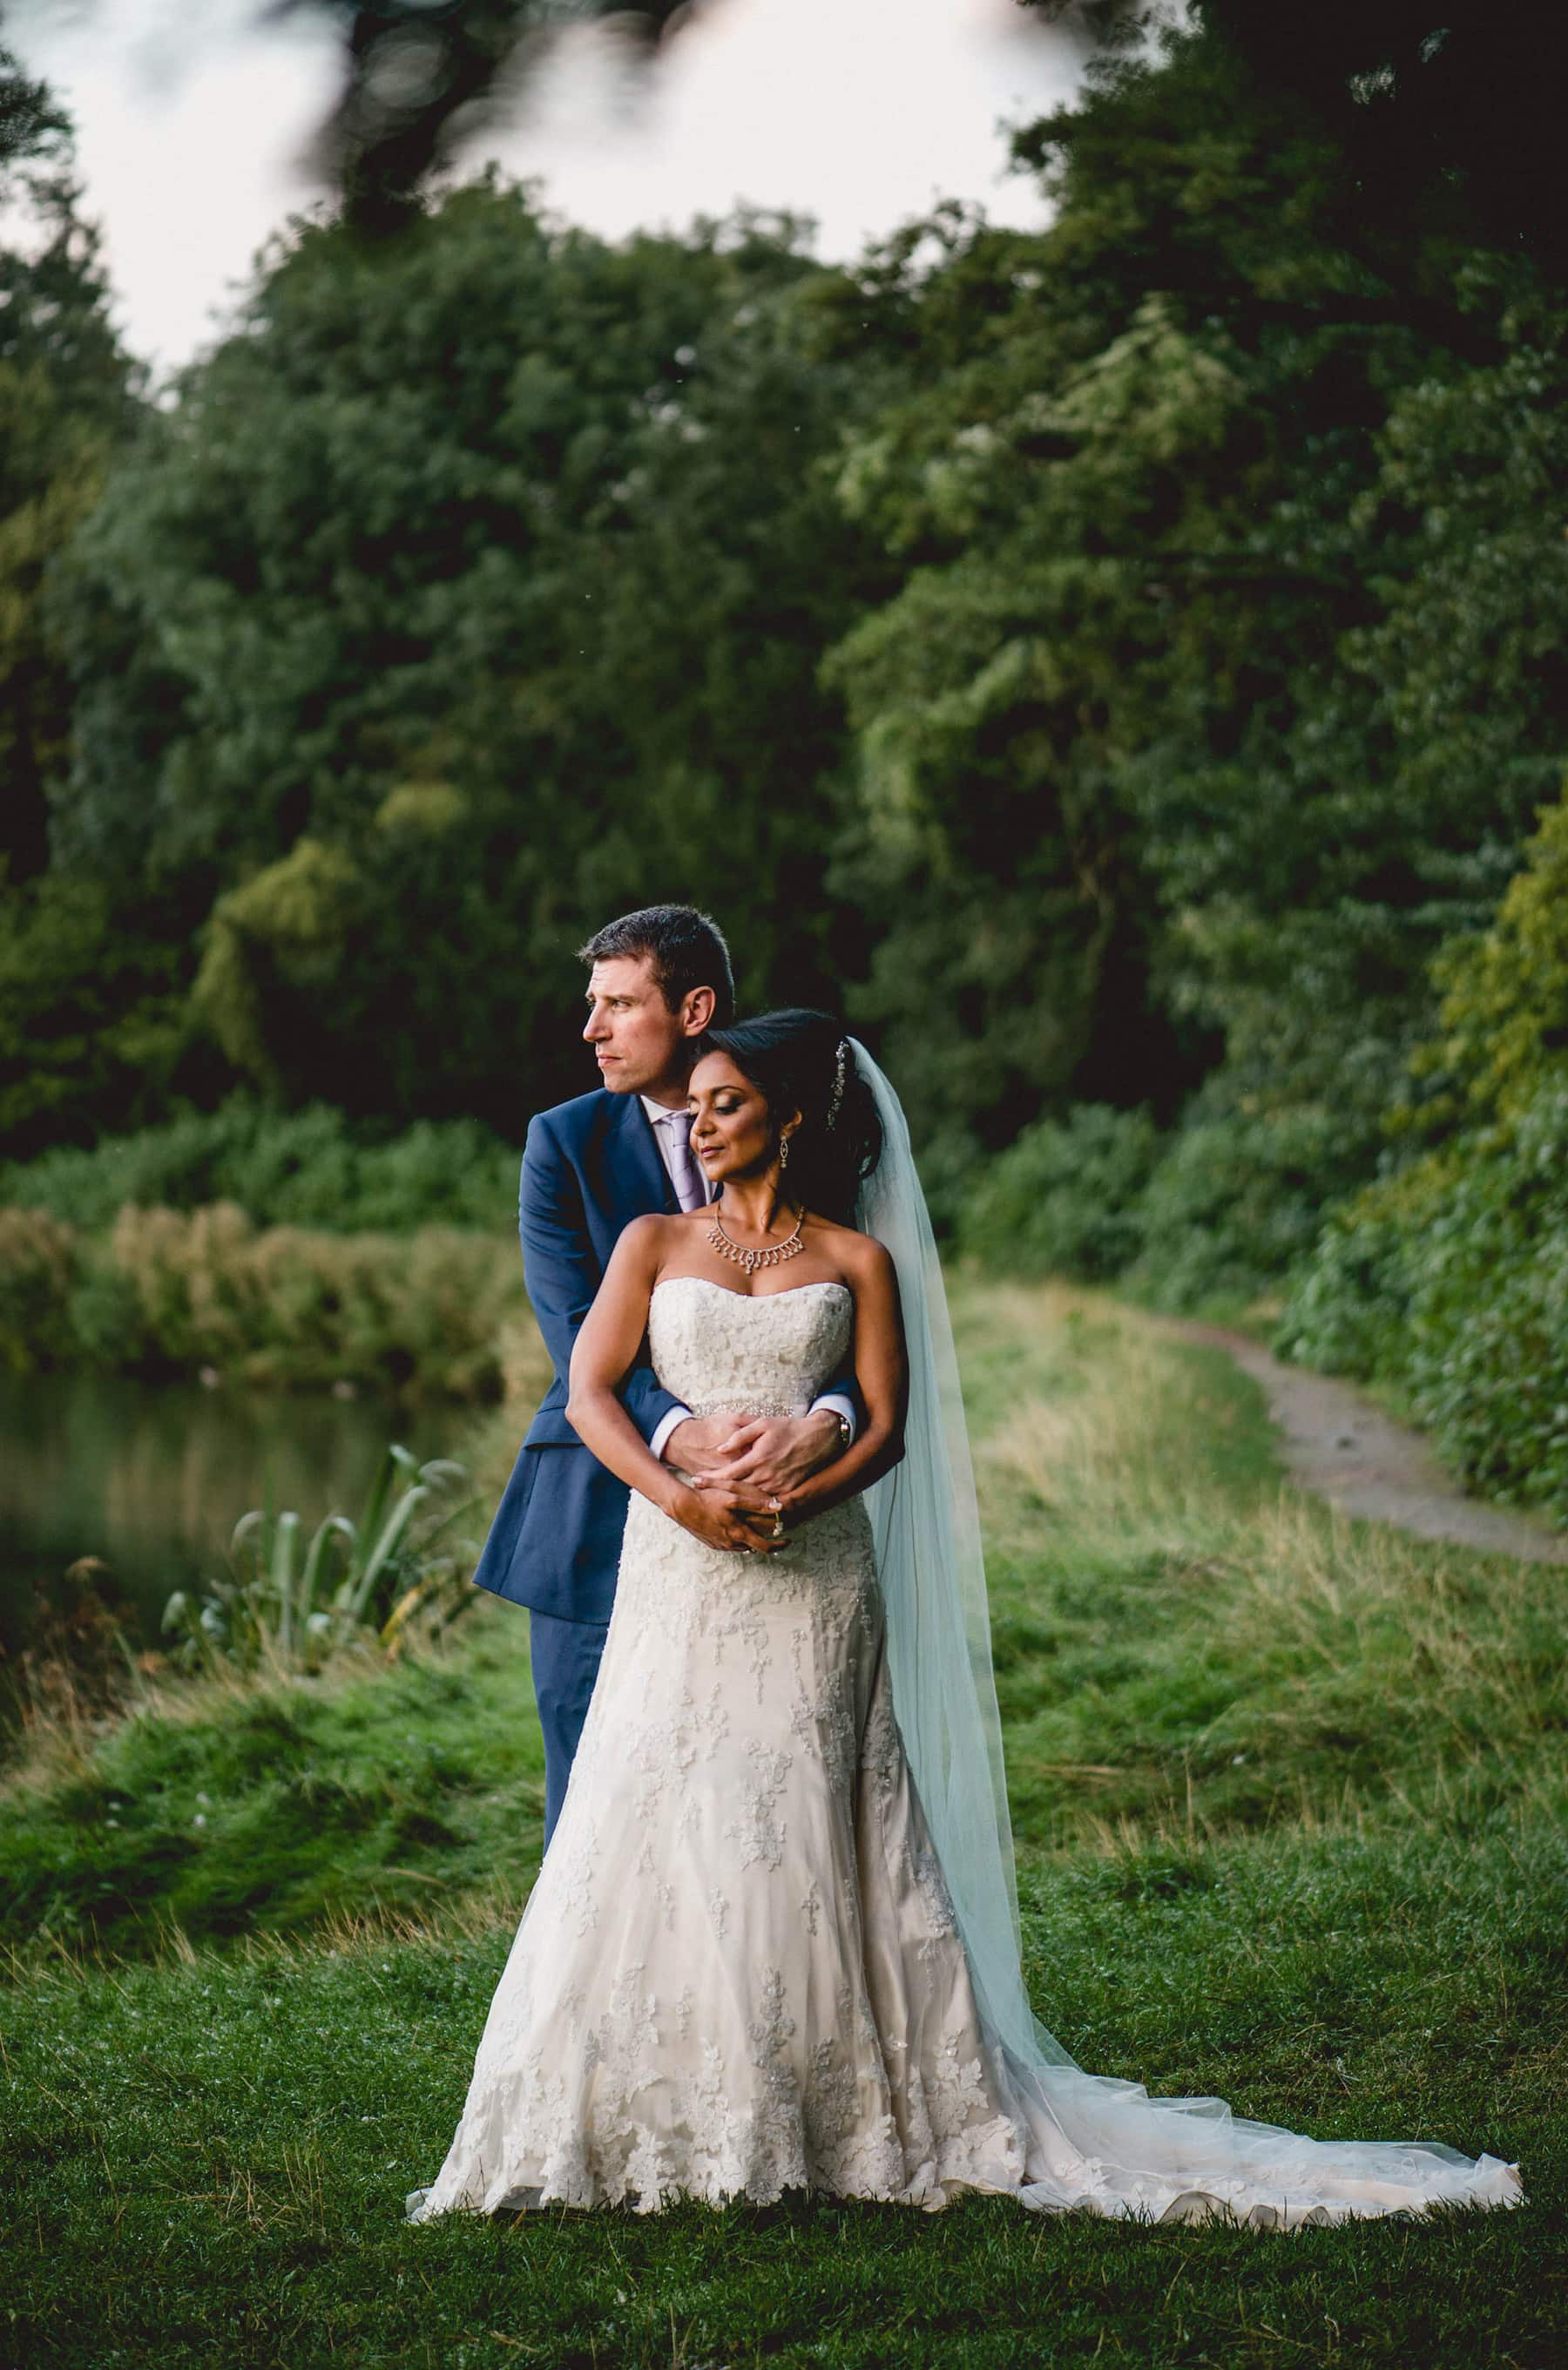 Shruti and Sam's Elegant Wedding at Eastnor Castle – Part 1